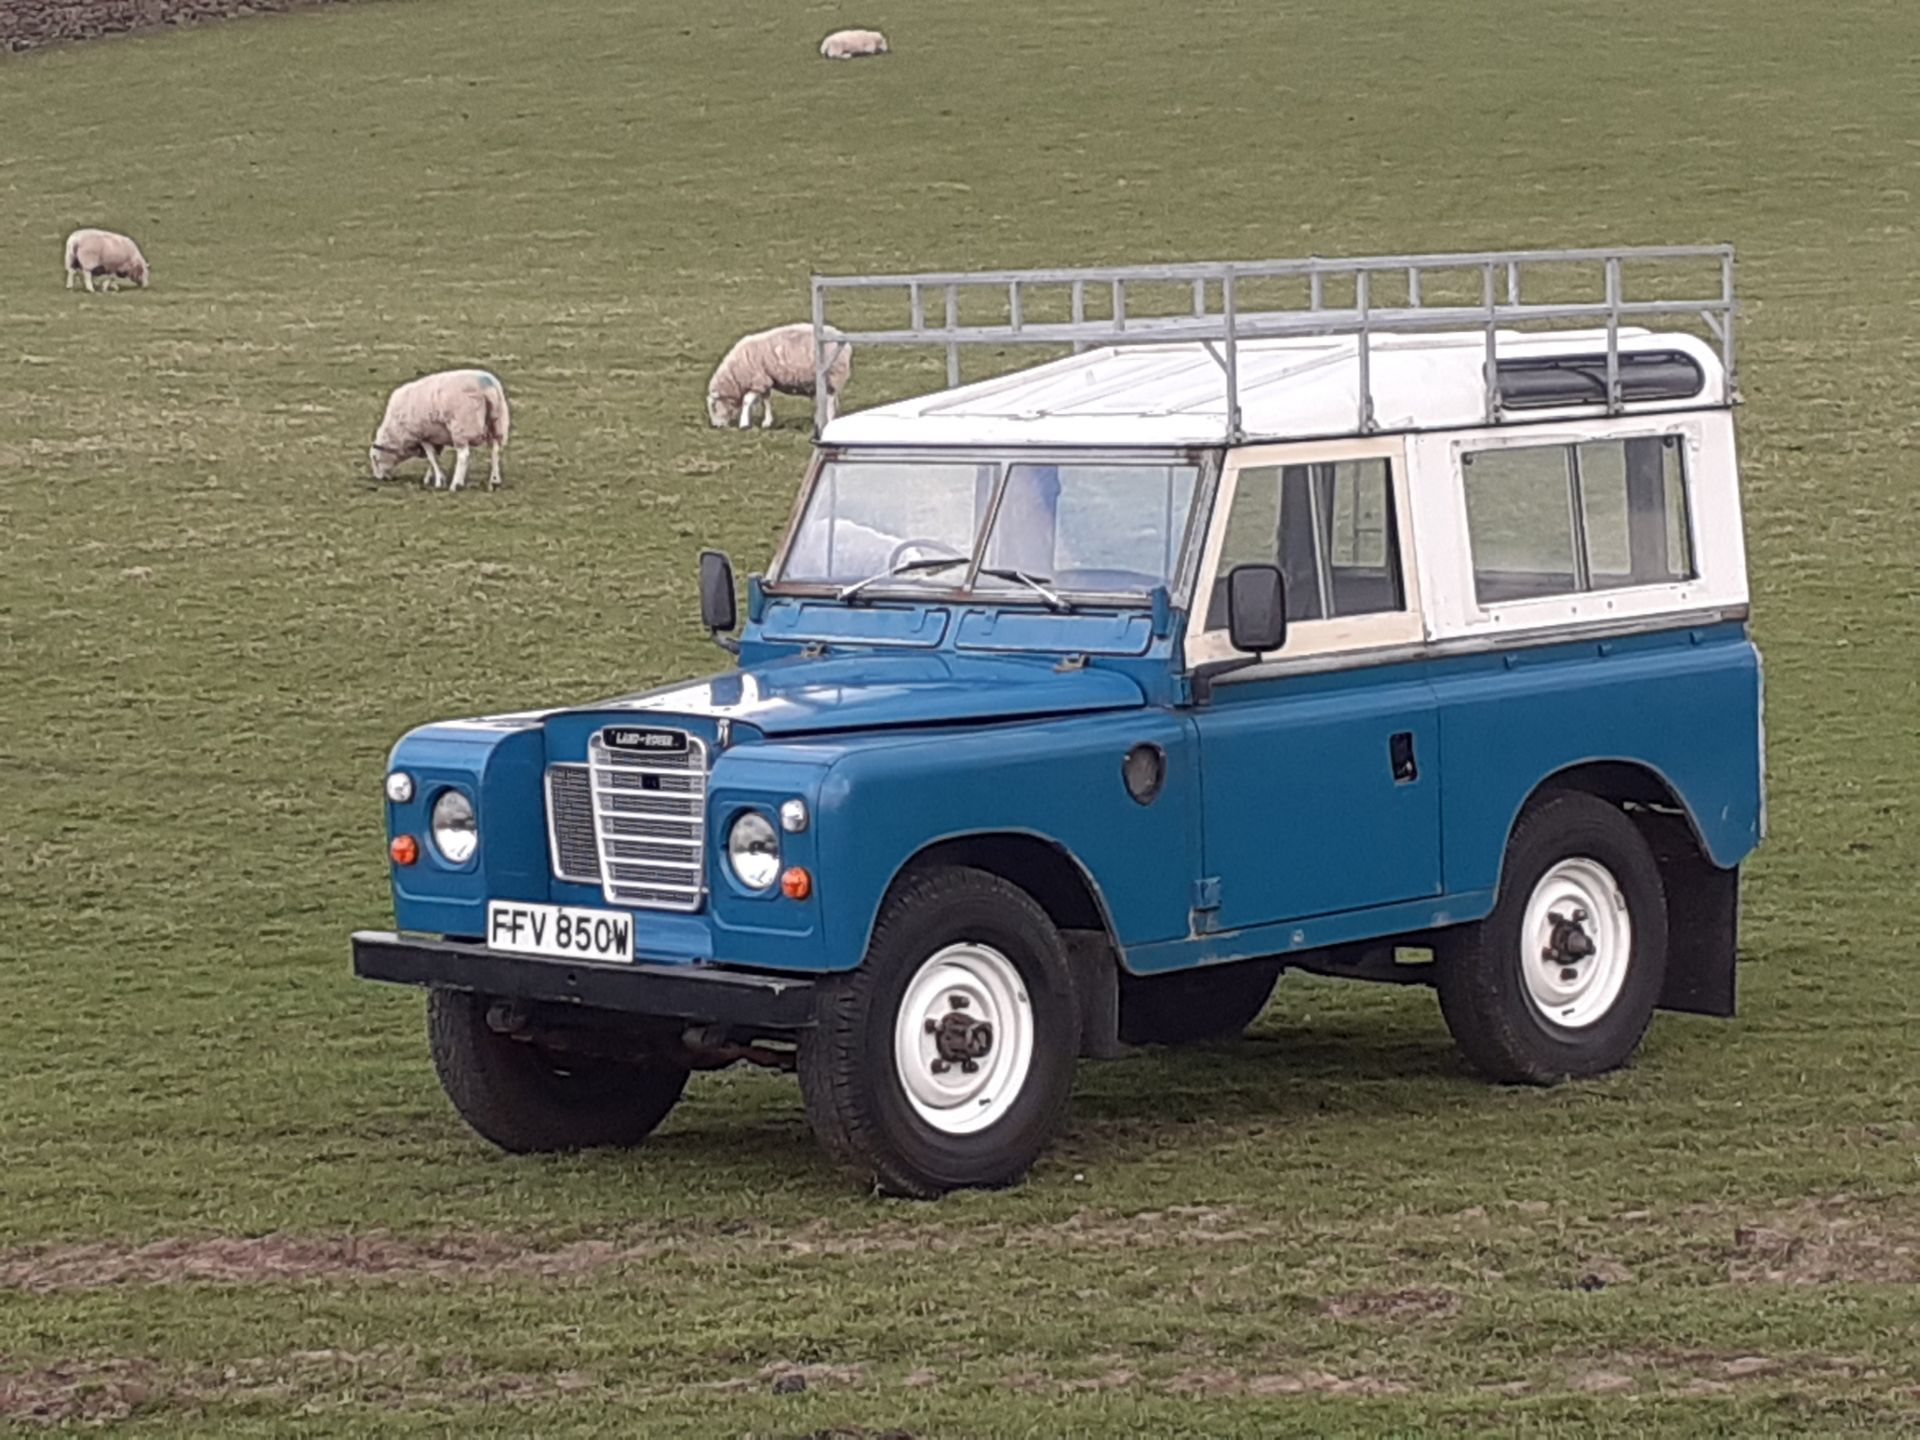 1980 LAND ROVER SERIES III CLASSIC STATION WAGON, TAX AND MOT EXEMPT *NO VAT* - Image 6 of 22